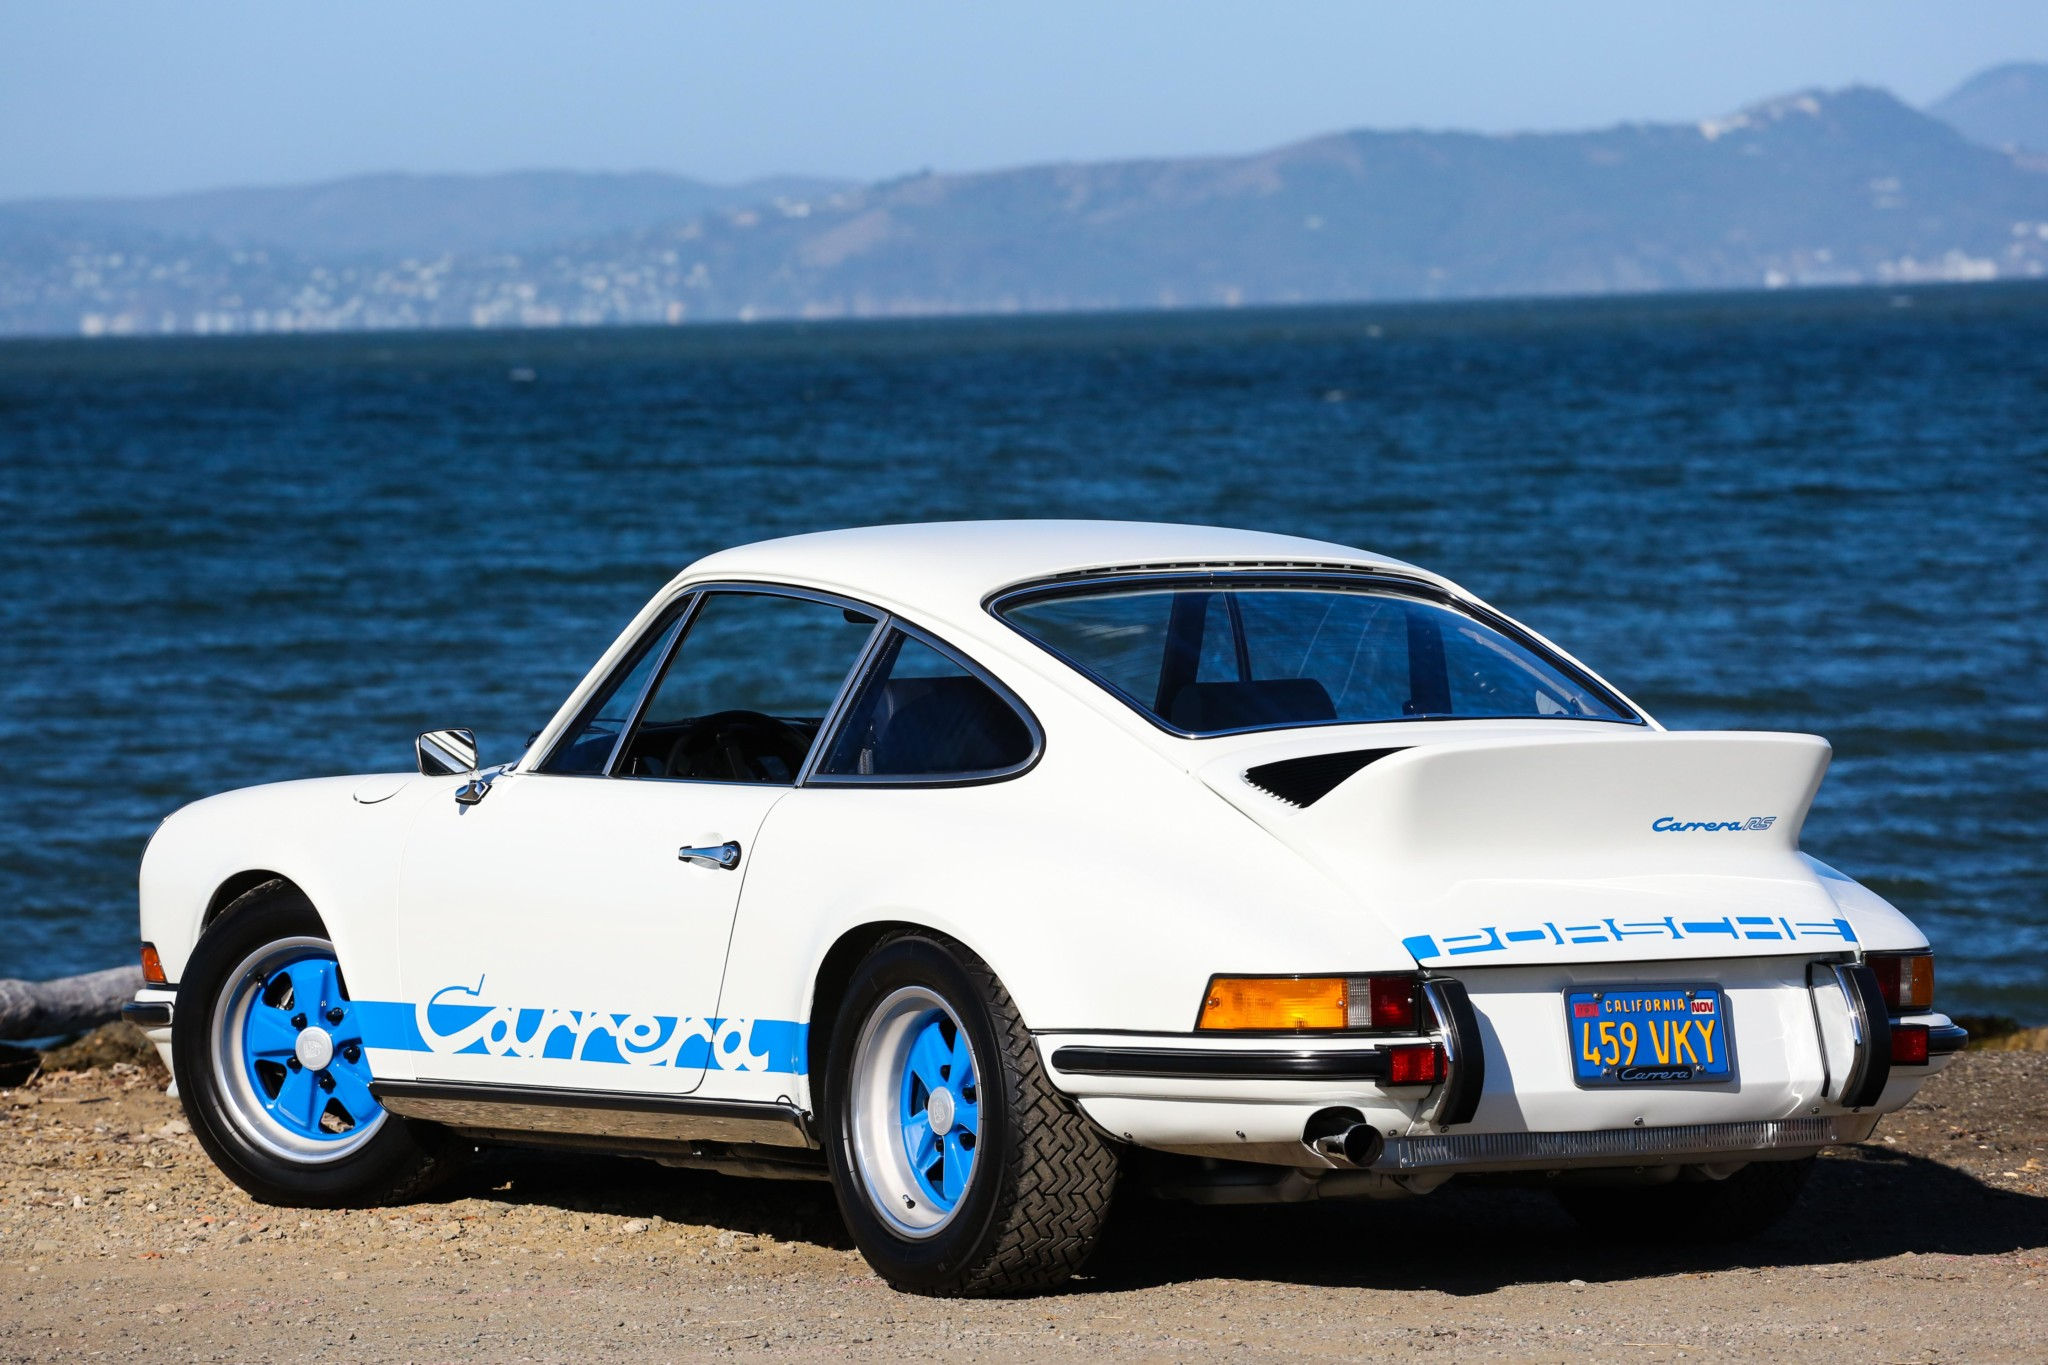 Porsche-911-Carrera-RS-2.7-1973-for-sale-25